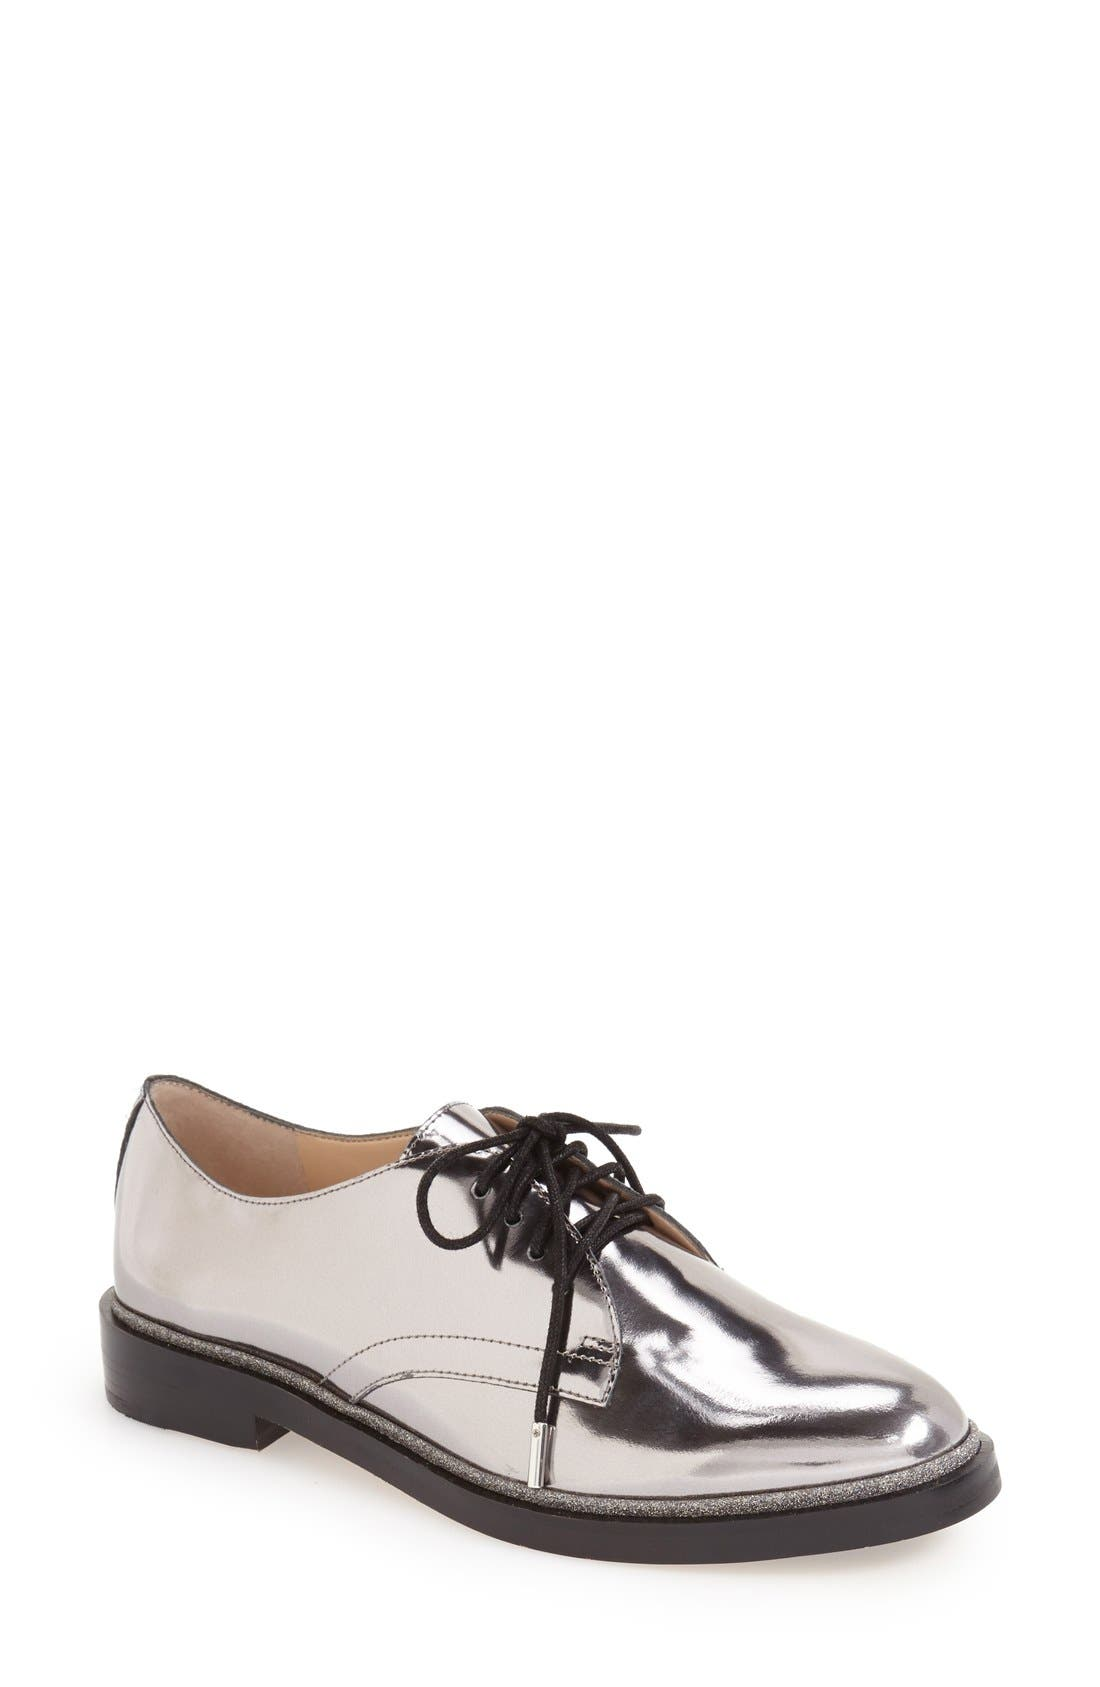 Main Image - Vince Camuto 'Ciana' Oxford (Women)